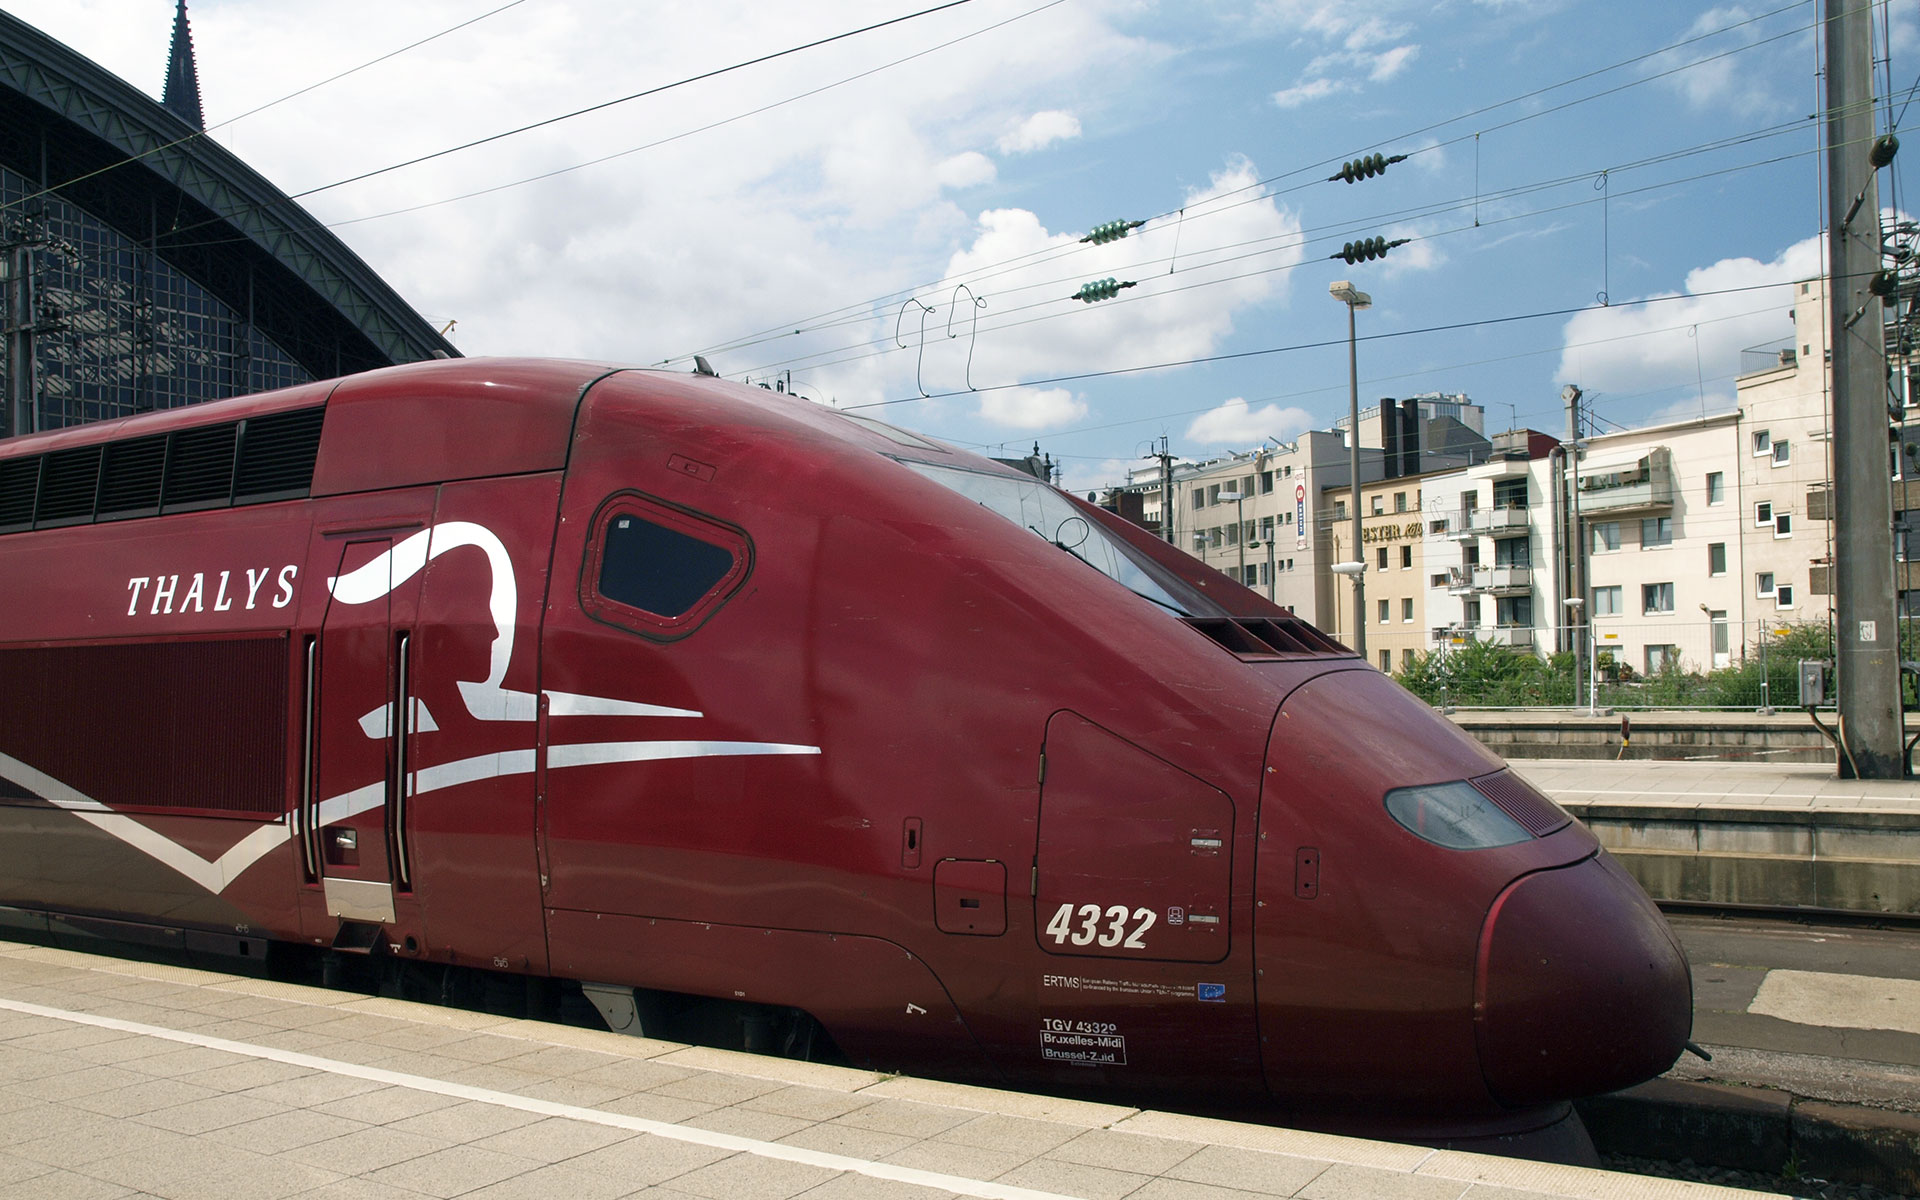 A Thalys train at Cologne station, Germany (photo © hidden europe).